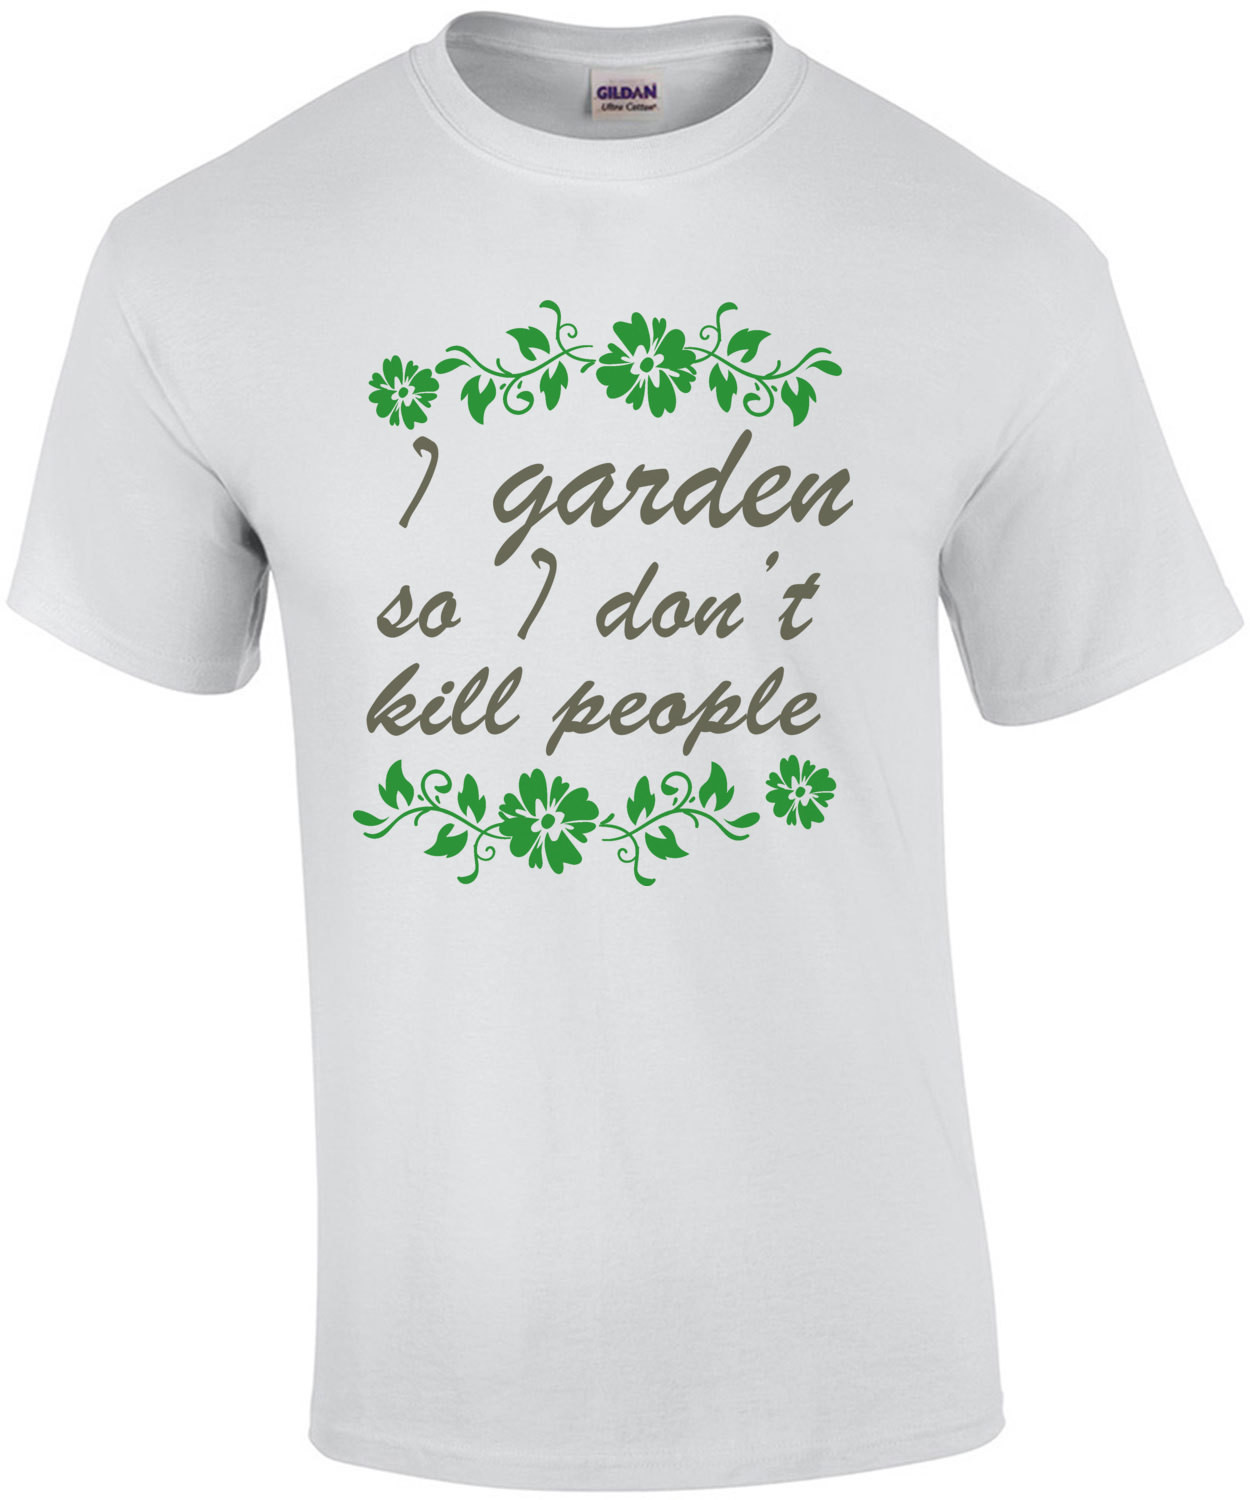 I garden so I don't kill people - funny gardening t-shirt